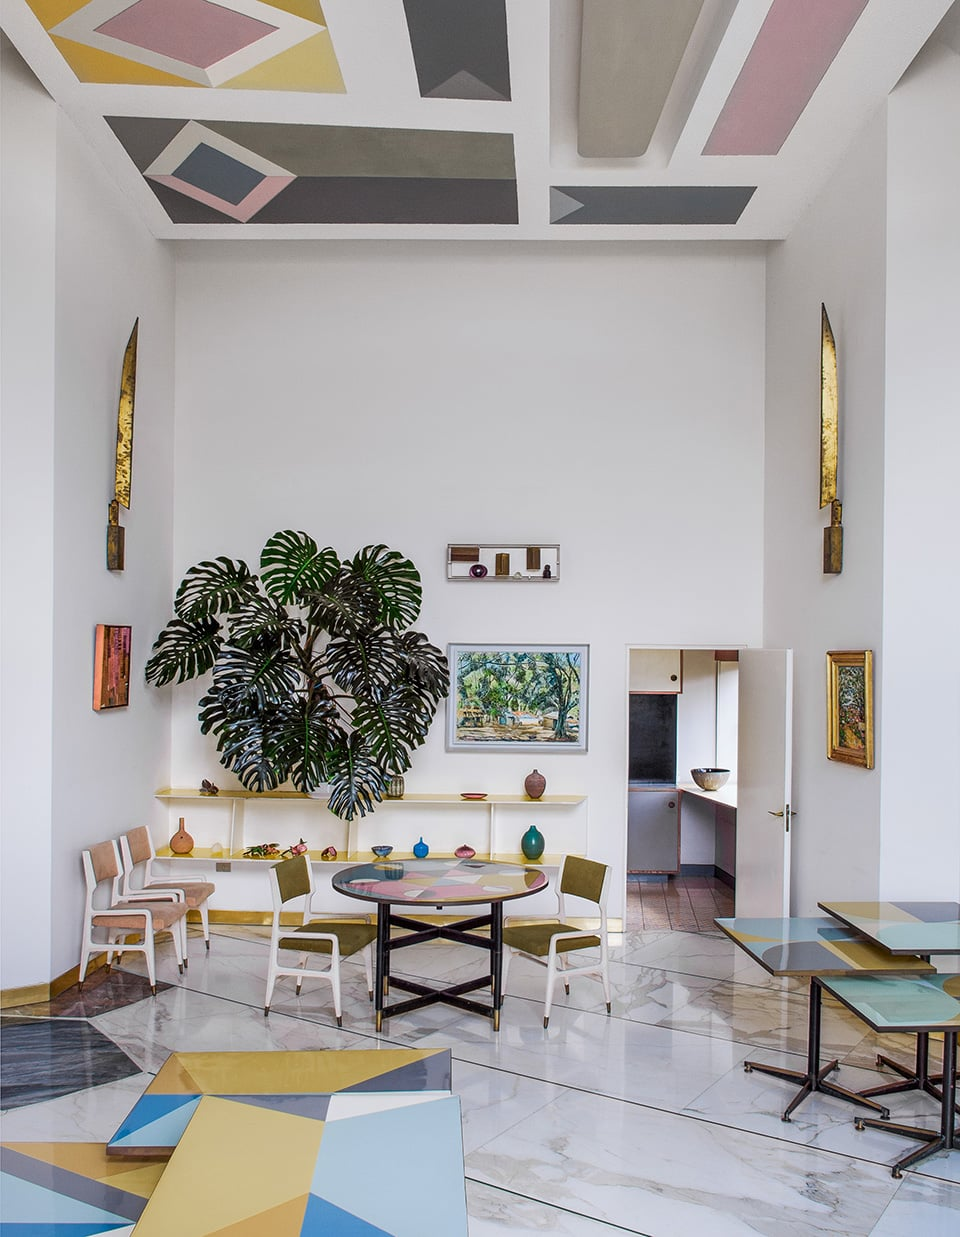 The main dining room of Villa Planchart, as seen in the book Gio Ponti, offered by Taschen